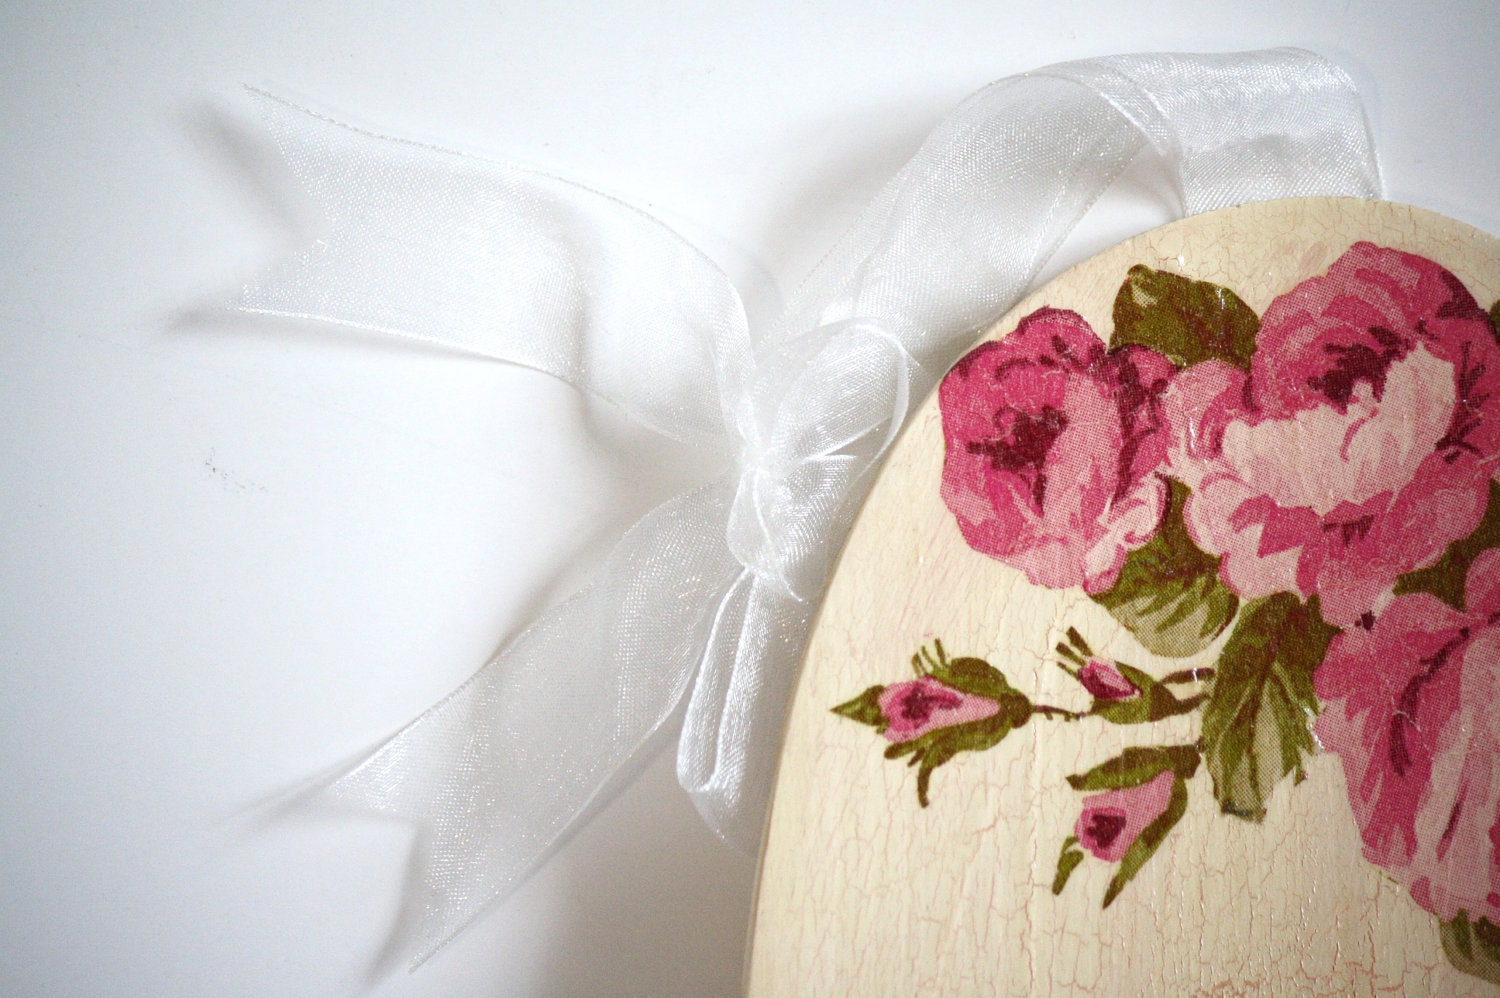 Pink roses shabby chic decoupage home decor, wall door, poletsy, poltreat, flowers, floral, pink, cream, for her, cozy, living room, bedroo - CatHot